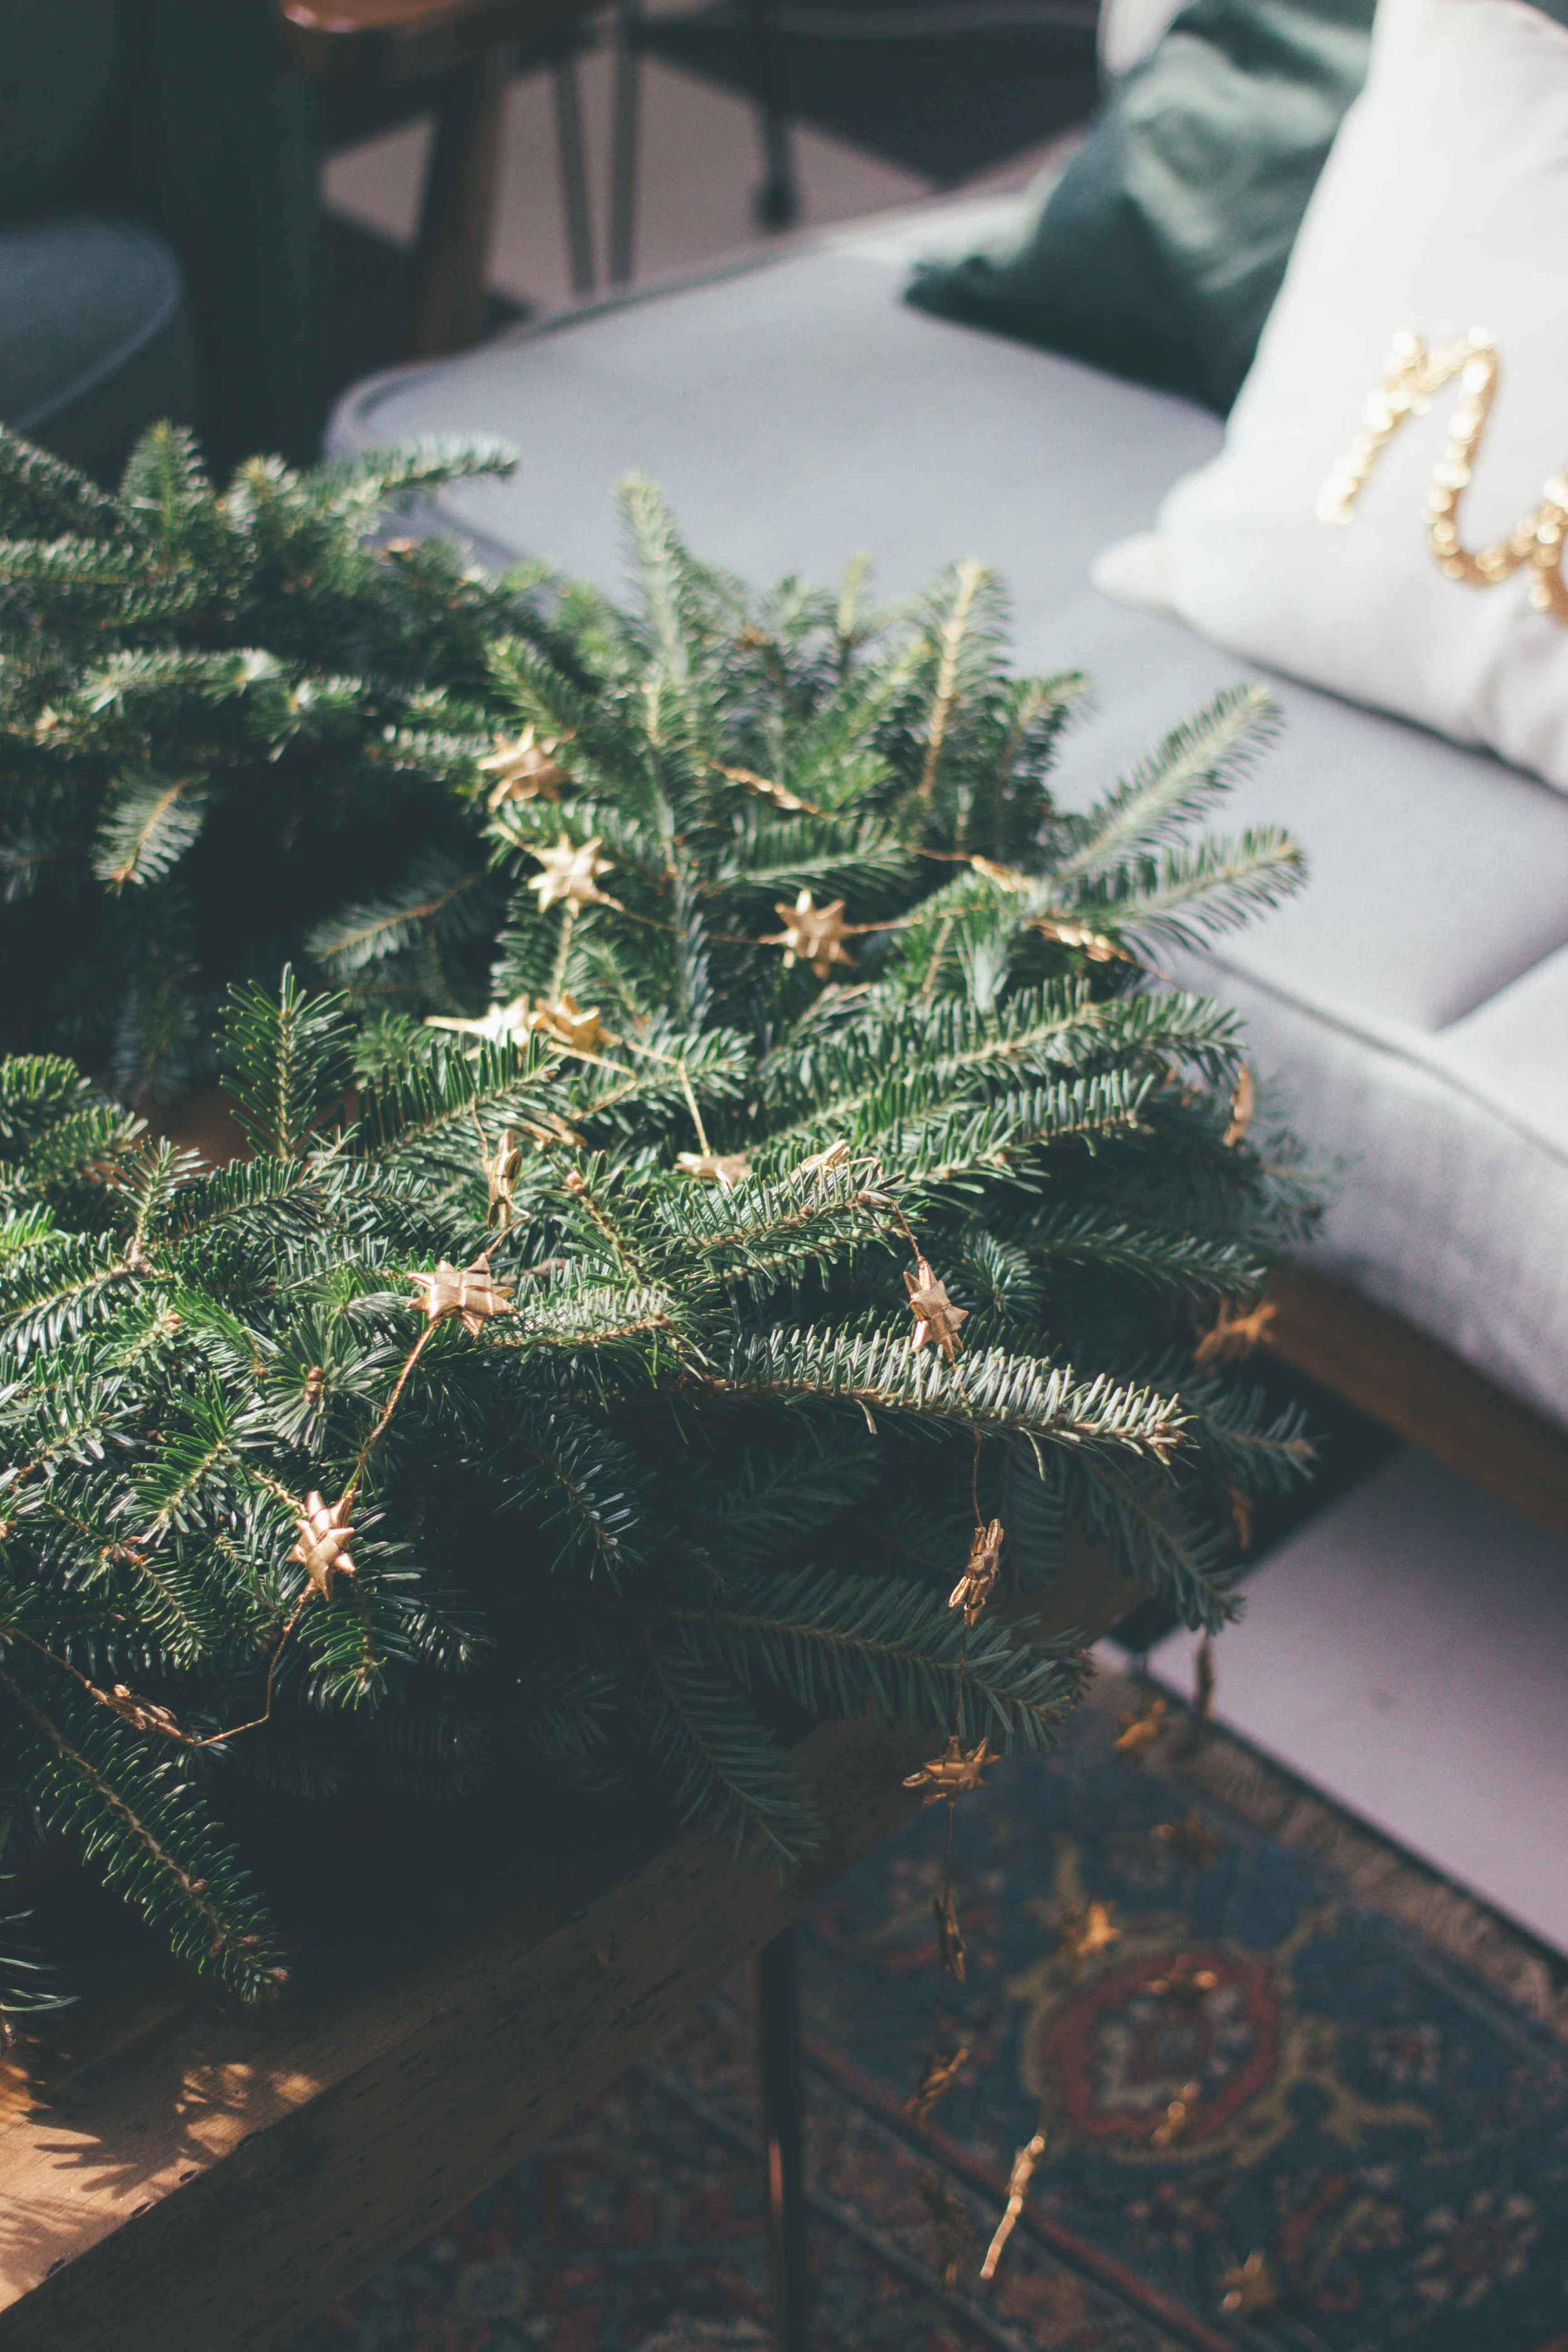 5 Ways To Decorate Sustainably & Ethically For The Holidays - The Well Essentials - #ethicalholiday #sustainableholiday #sustainabledecor #ecofriendly #christmas #happyholidays